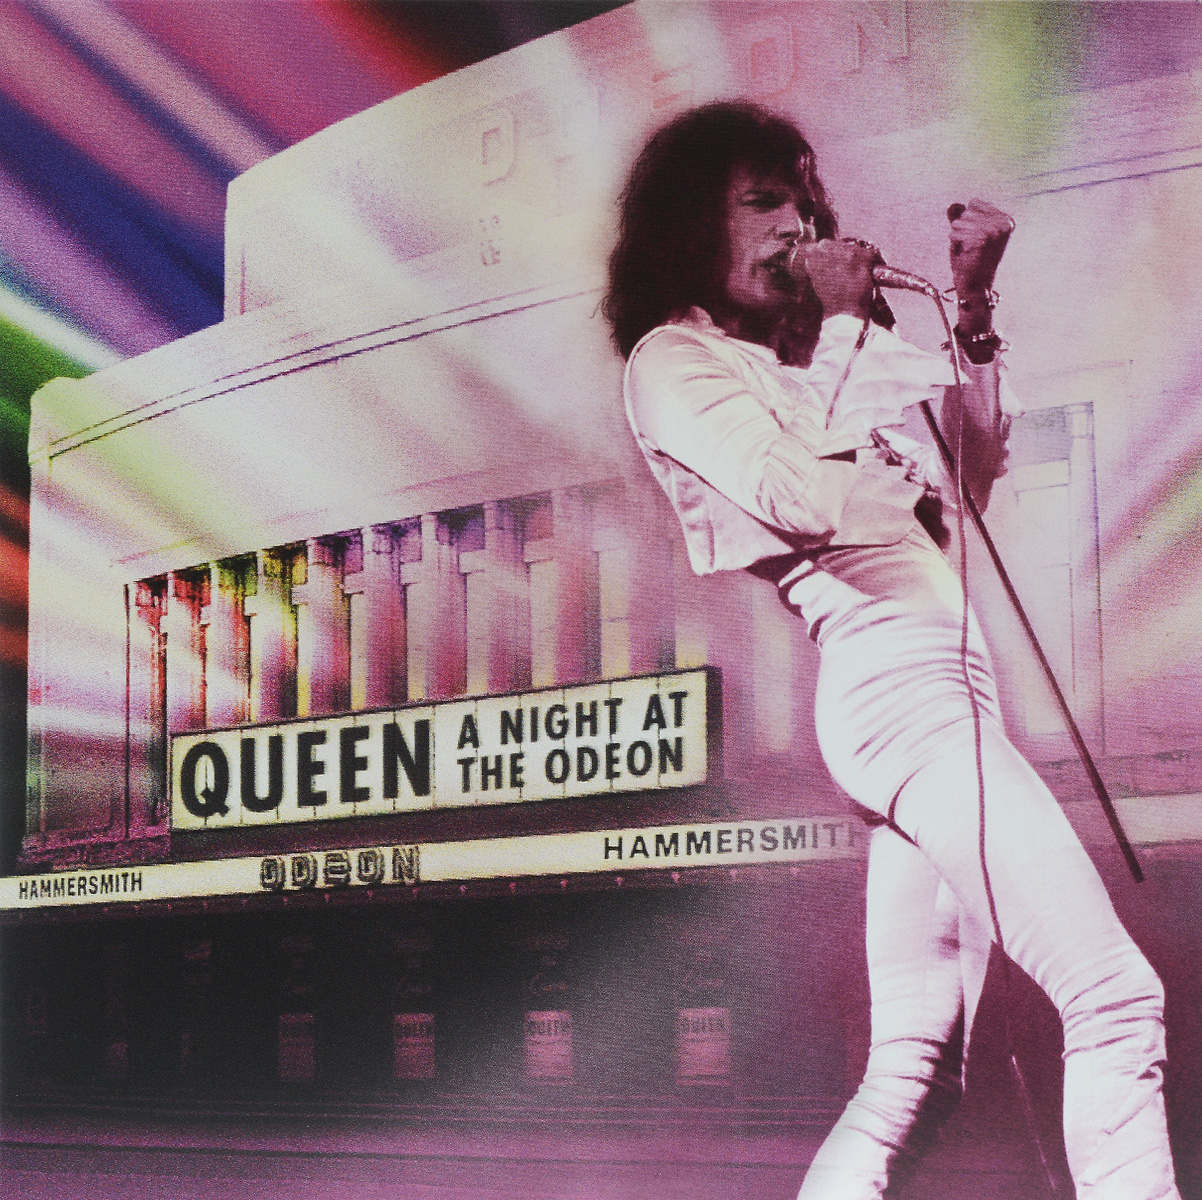 Queen Queen. A Night At The Odeon (2 LP) cd queen a night at the opera 2011 remastered